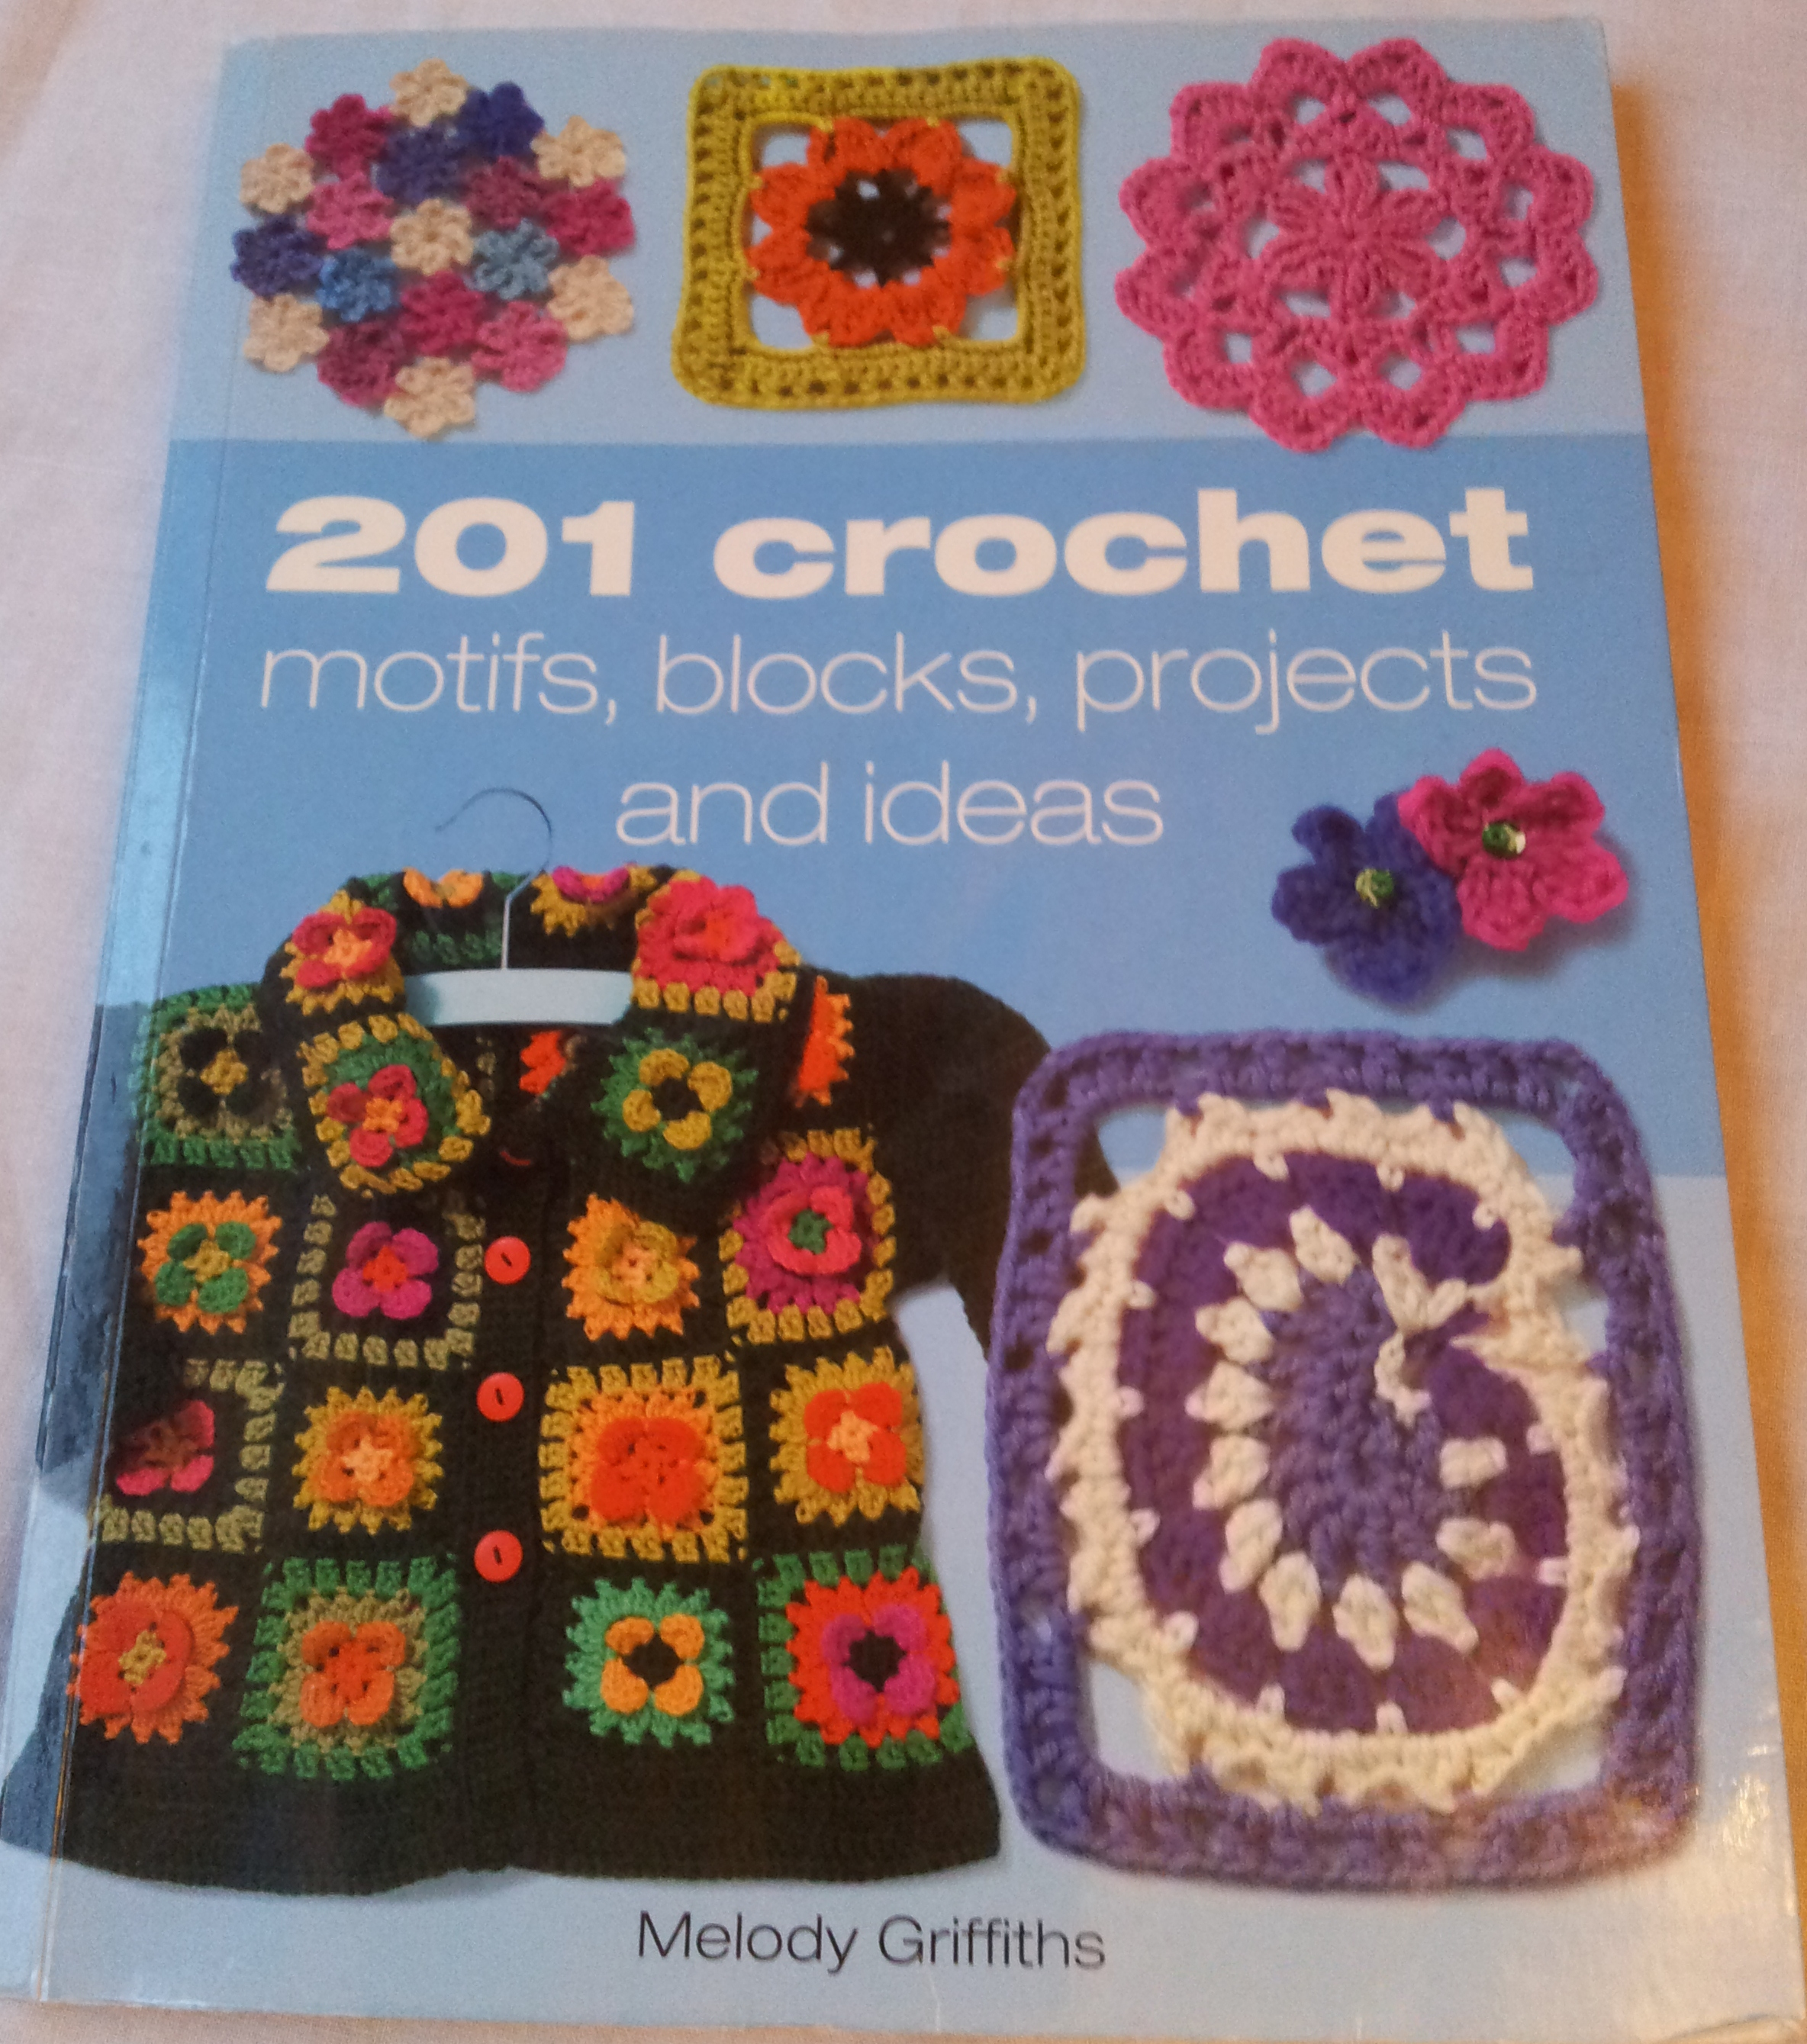 Free Crochet Patterns For Christmas Motifs : 201 crochet motifs blocks projects and ideas by Melody ...